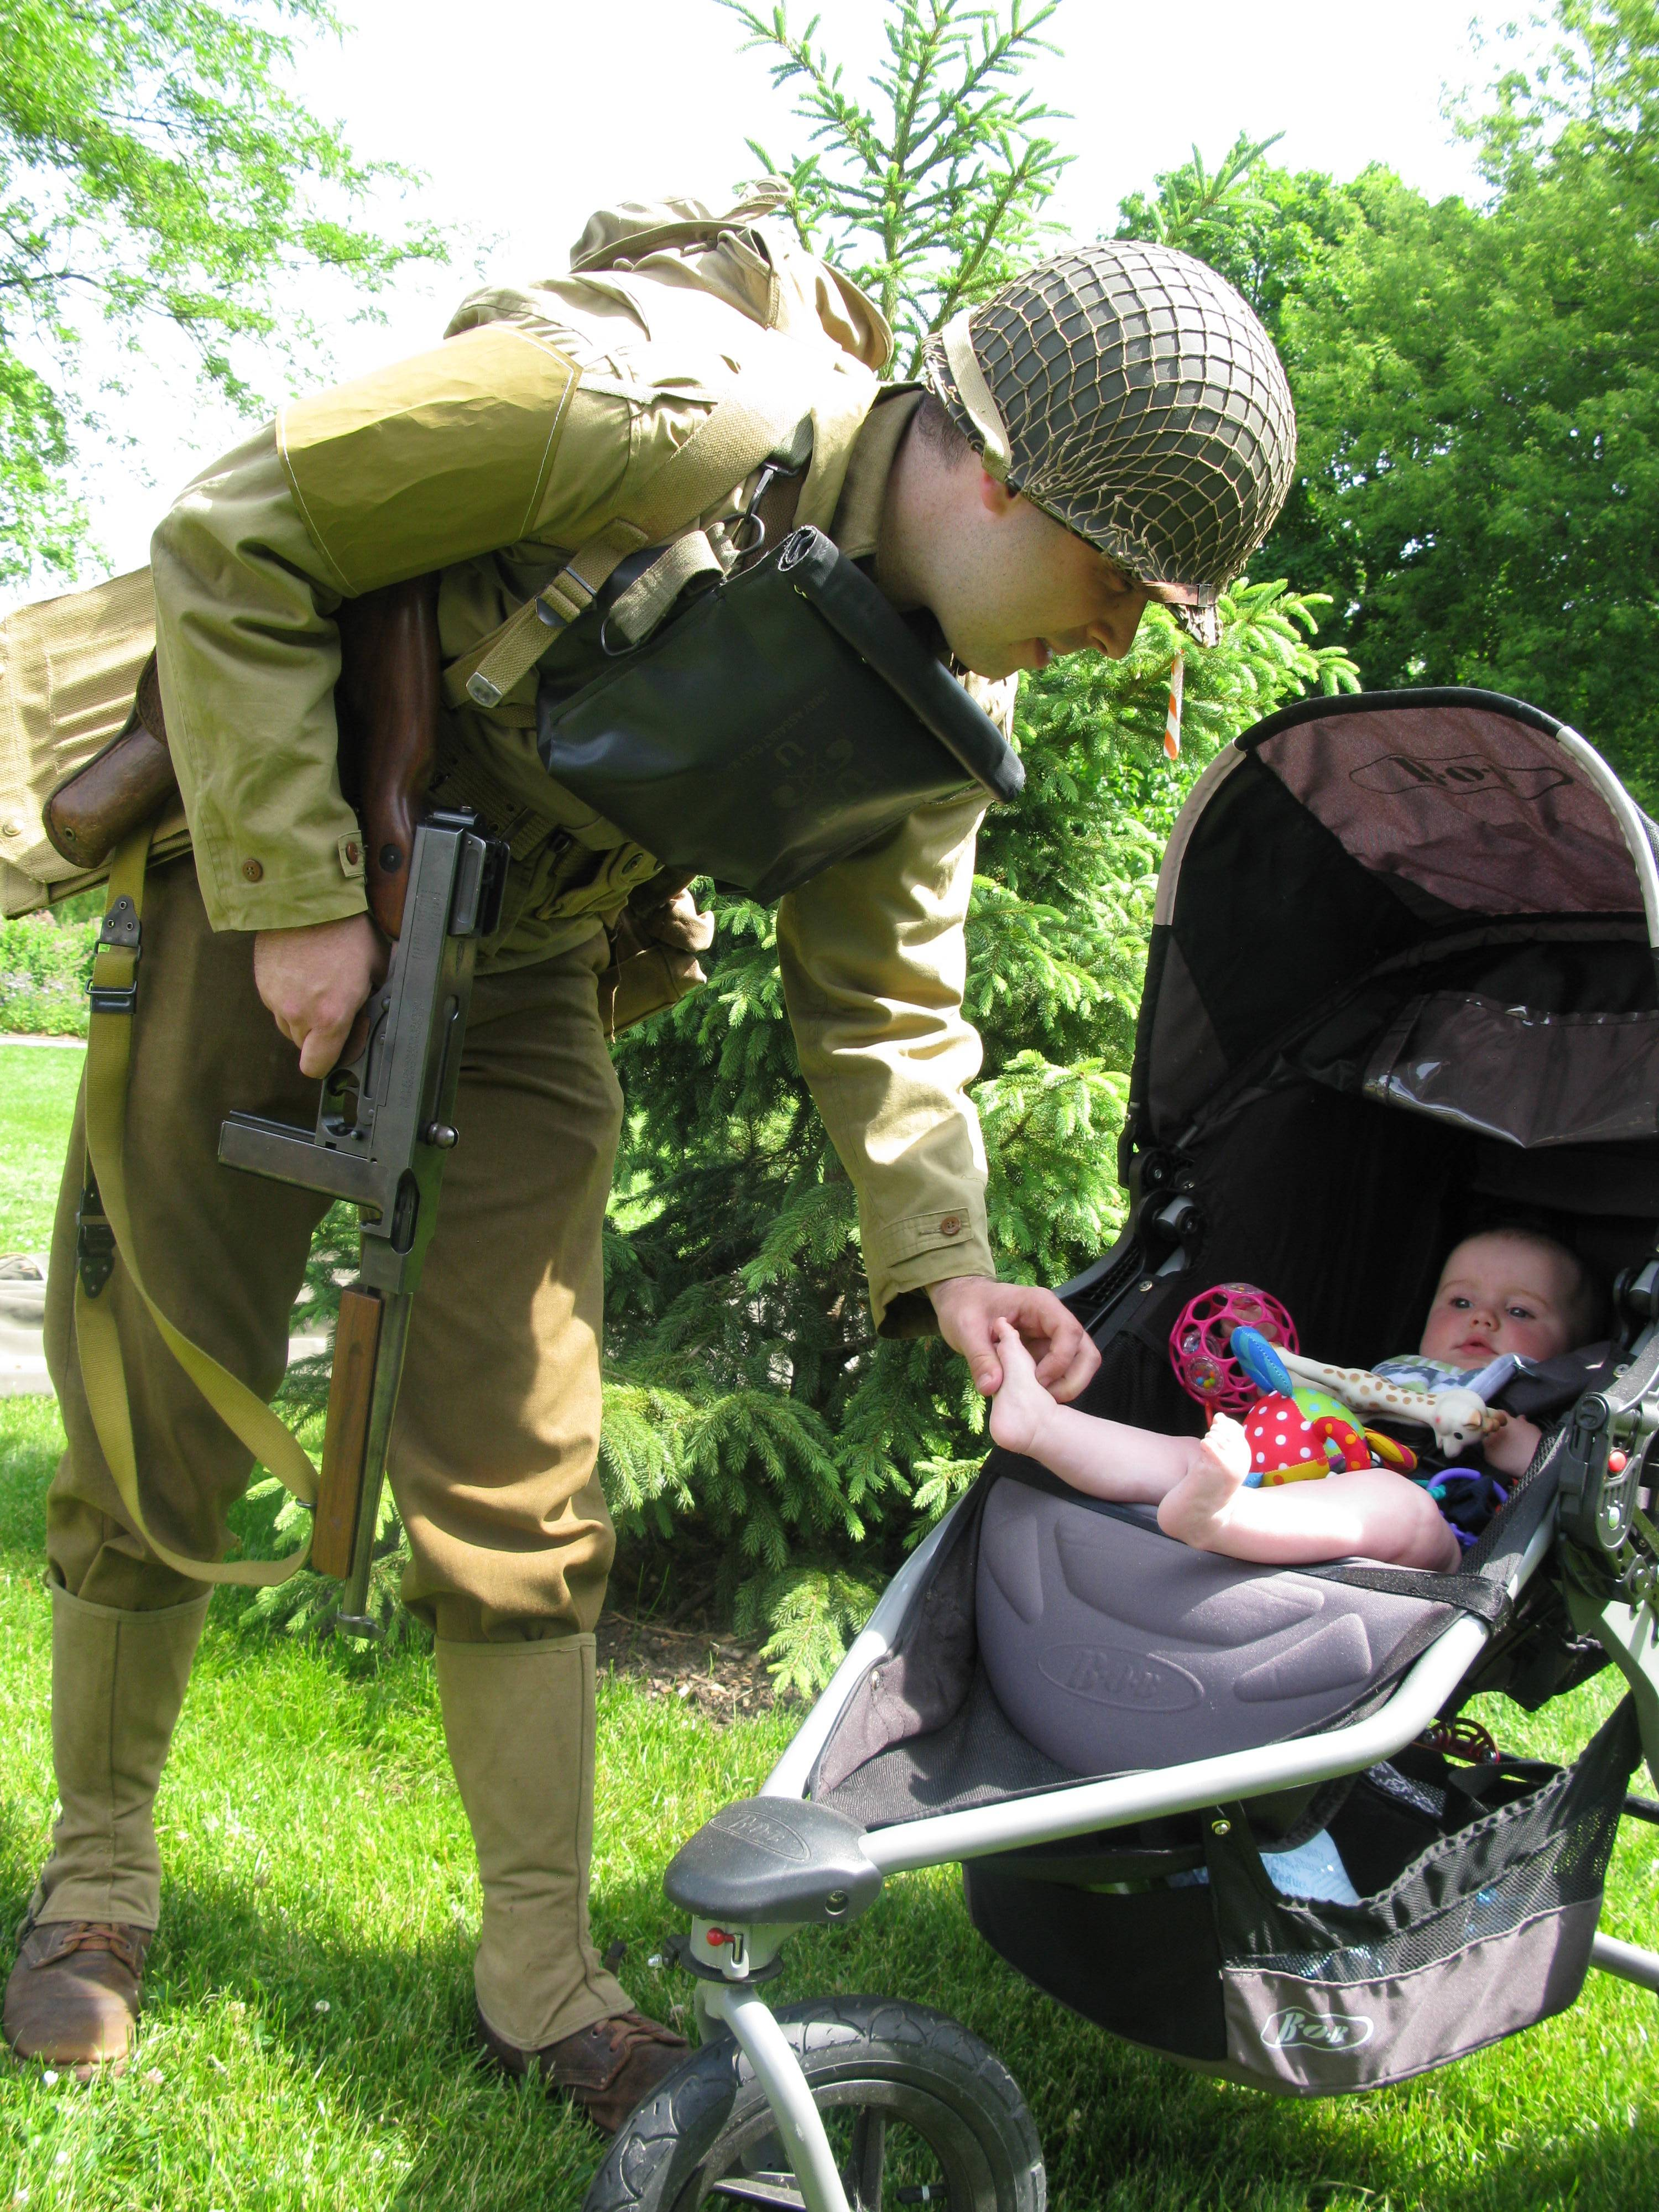 Aaron Conklin, 31, of Plainfield with the Living History Detachment of the First Division Museum at Cantigny Park takes a break to watch his 8-month-old daughter, Carla. Conklin is dressed as a World War II 1st Infantry Division soldier demonstrating what first wave troops wore when they landed on the beaches of Normandy, France, on D-Day.